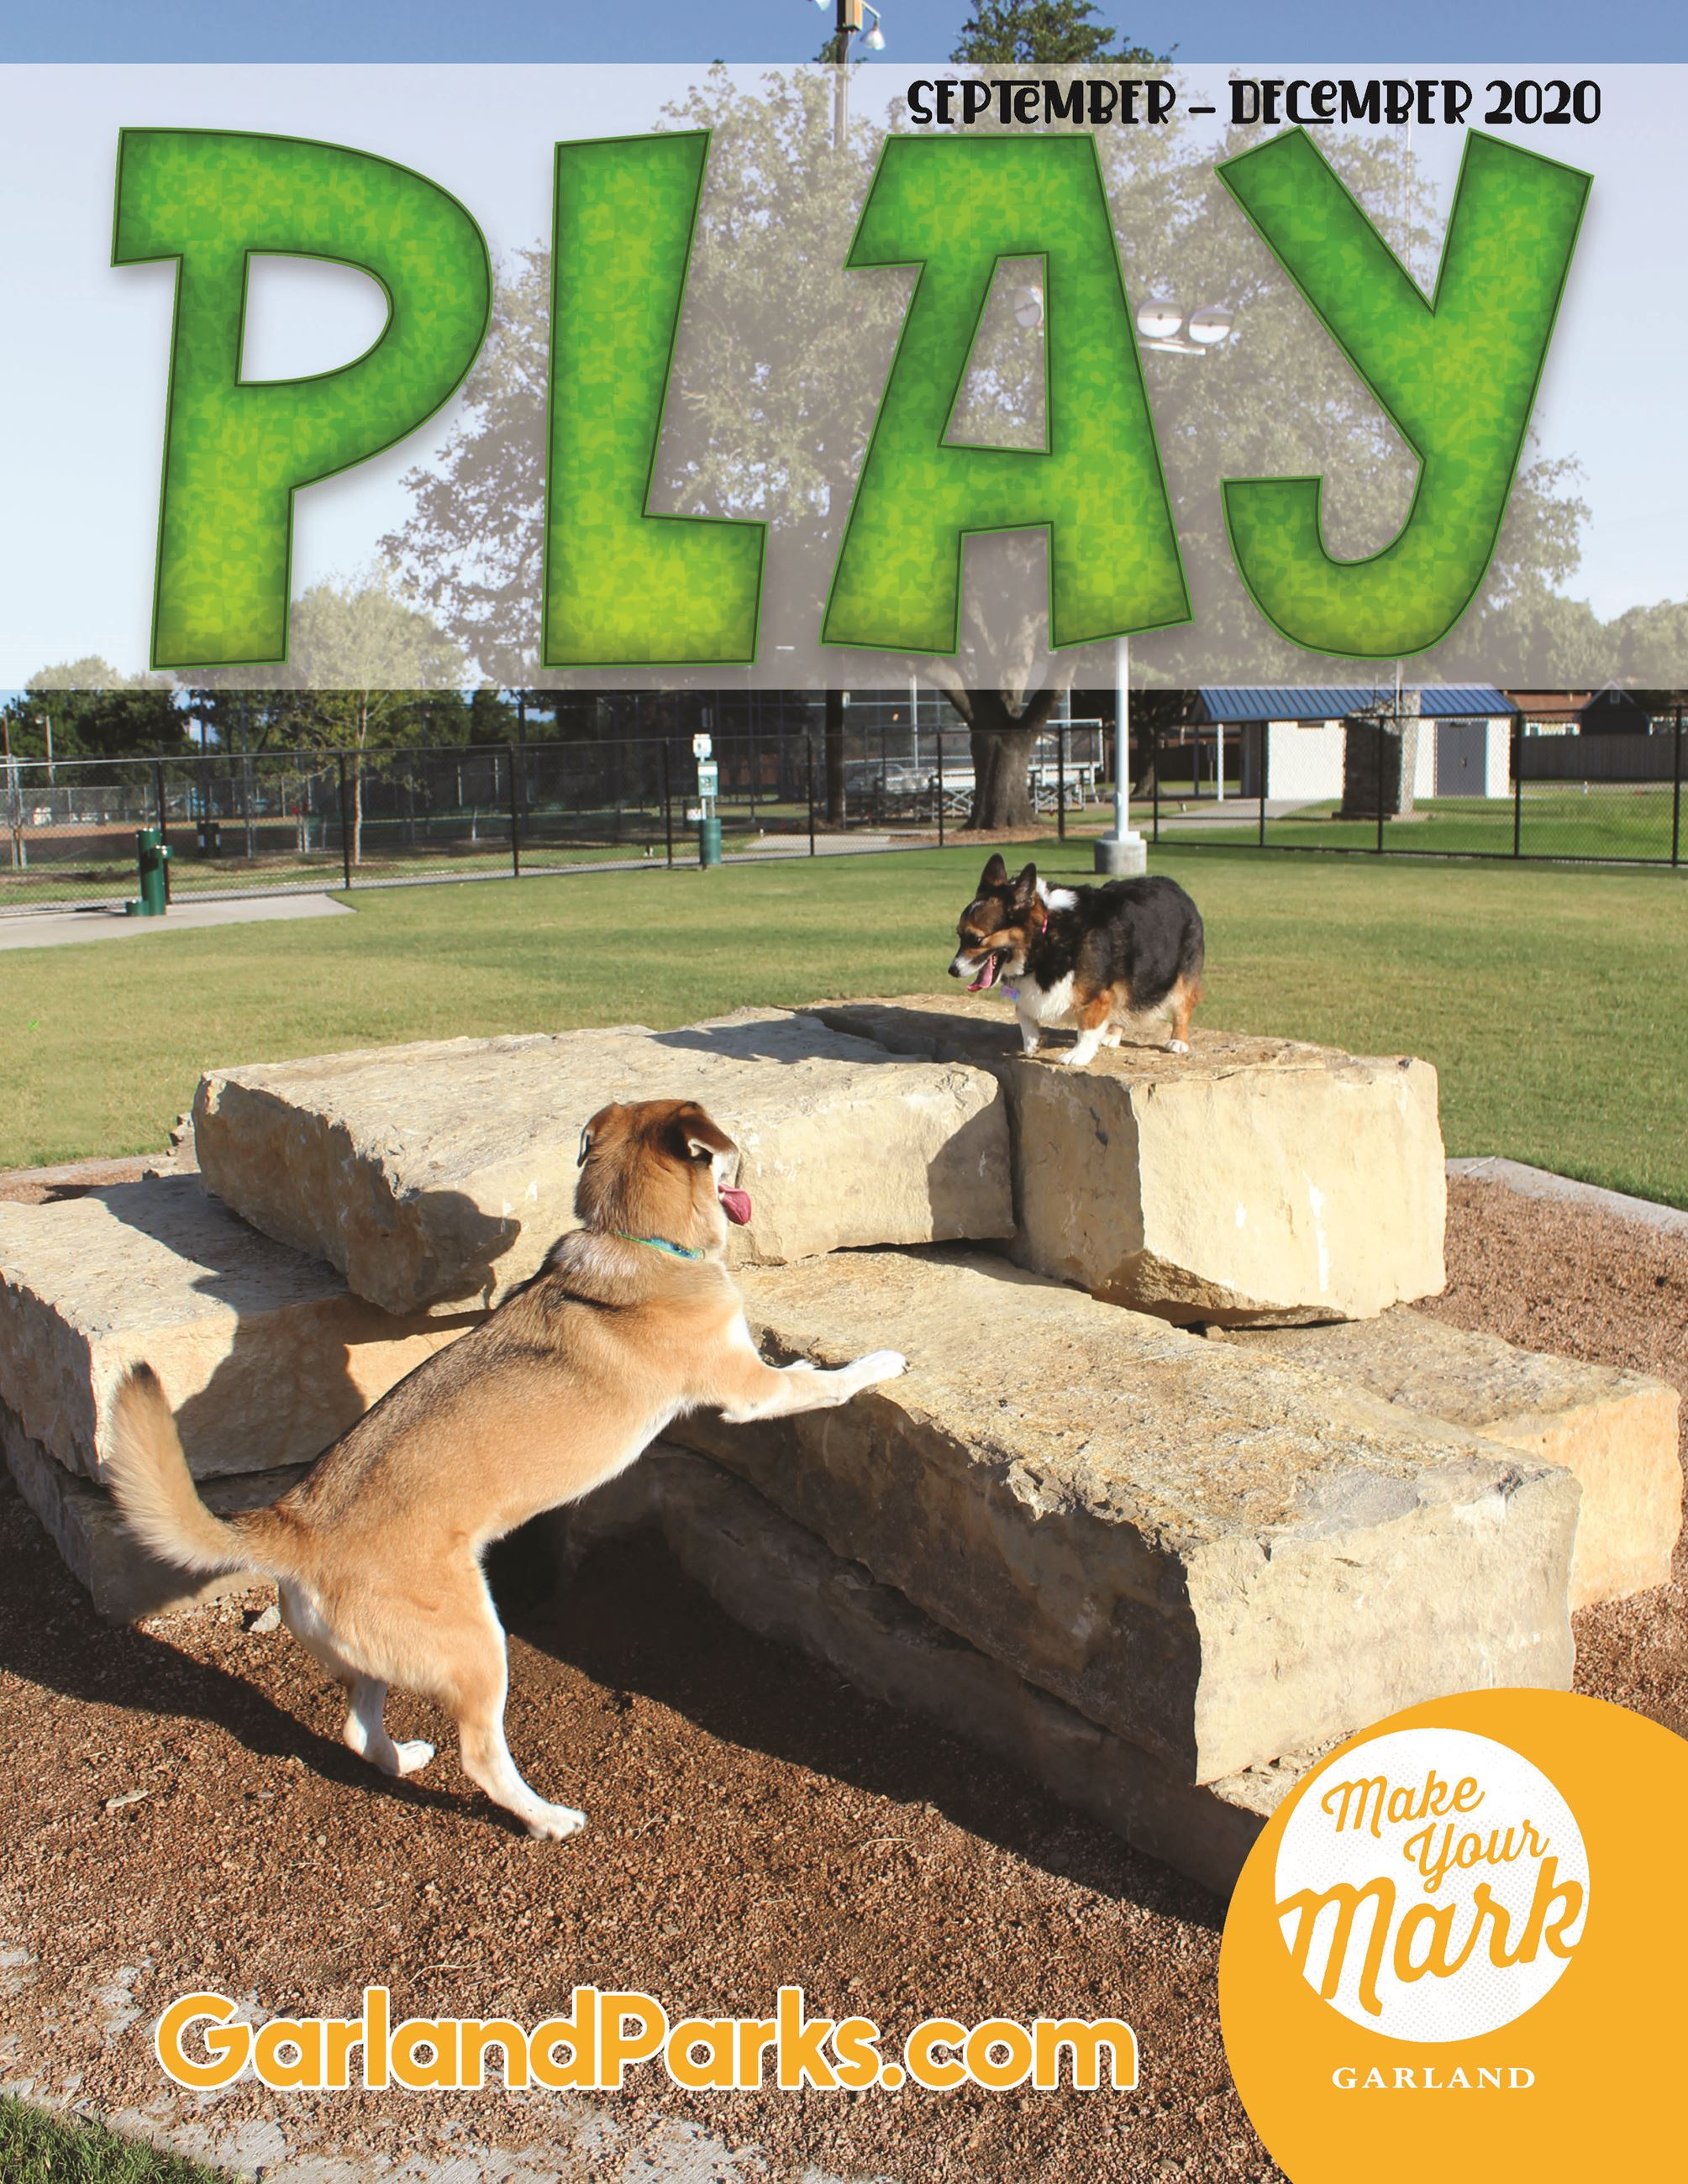 Fall 2020 Play Guide with dog at dog park on front cover